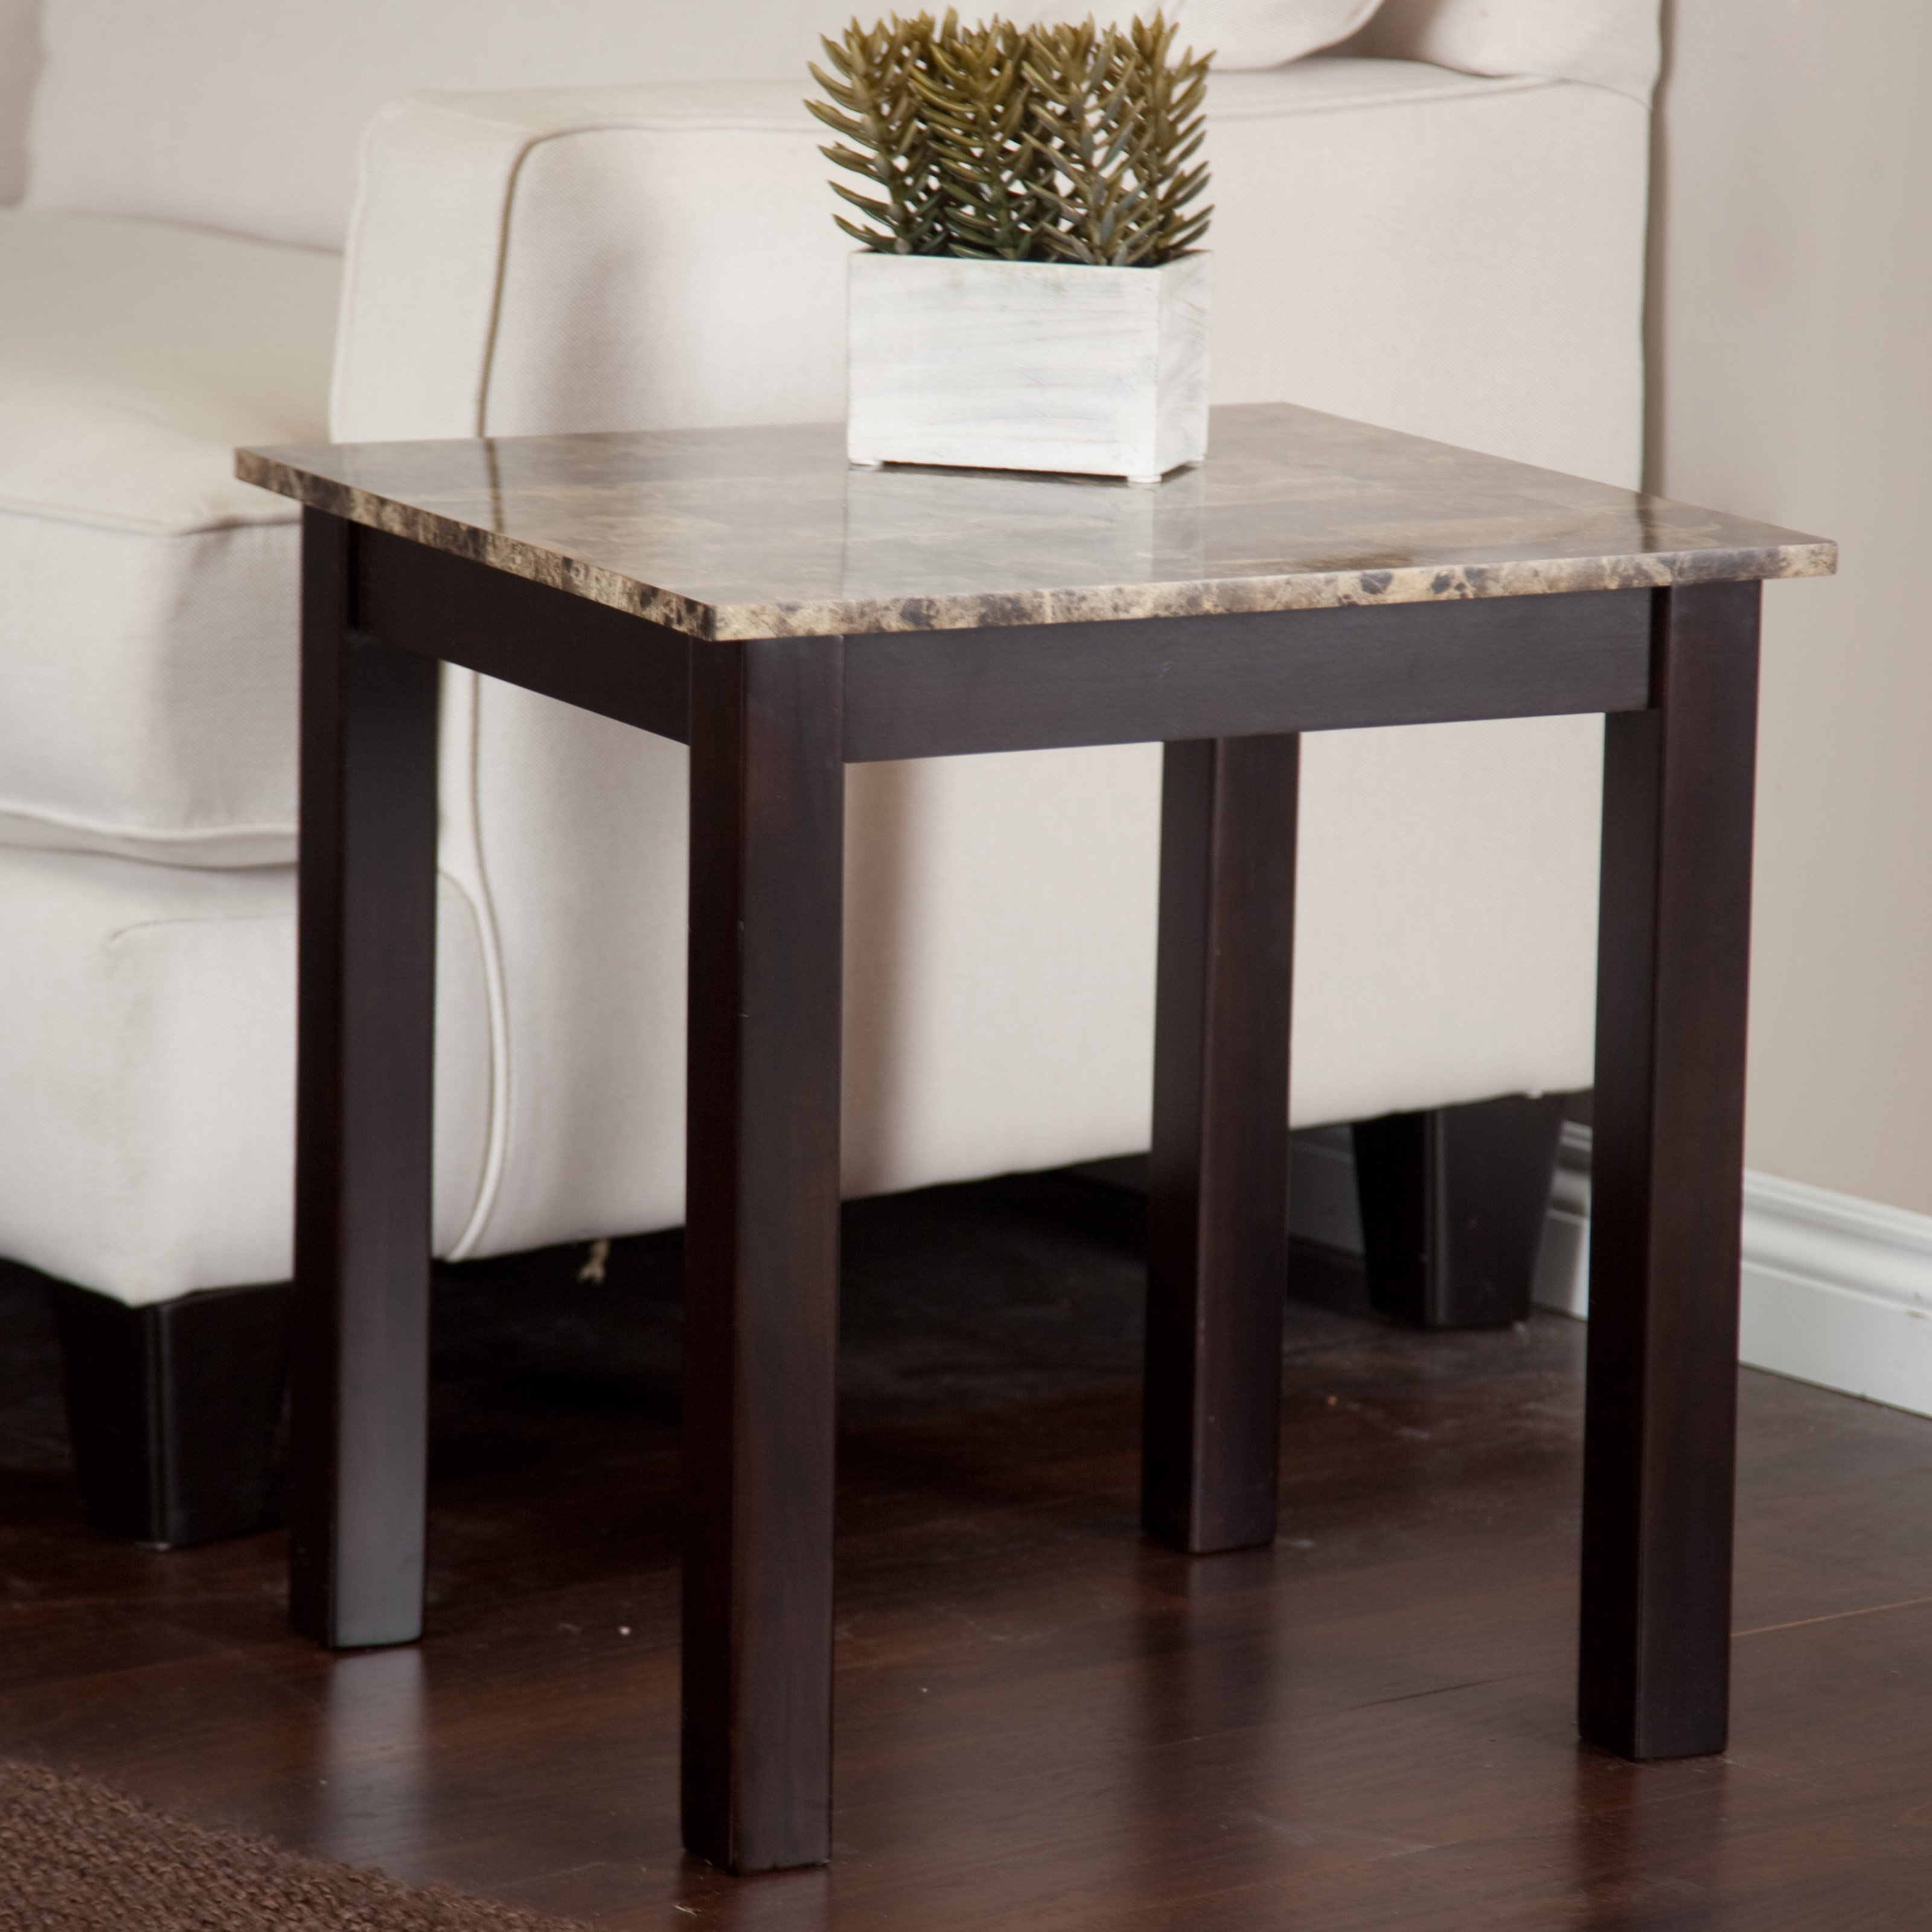 Monarch accent table cappuccino marble top walmart com